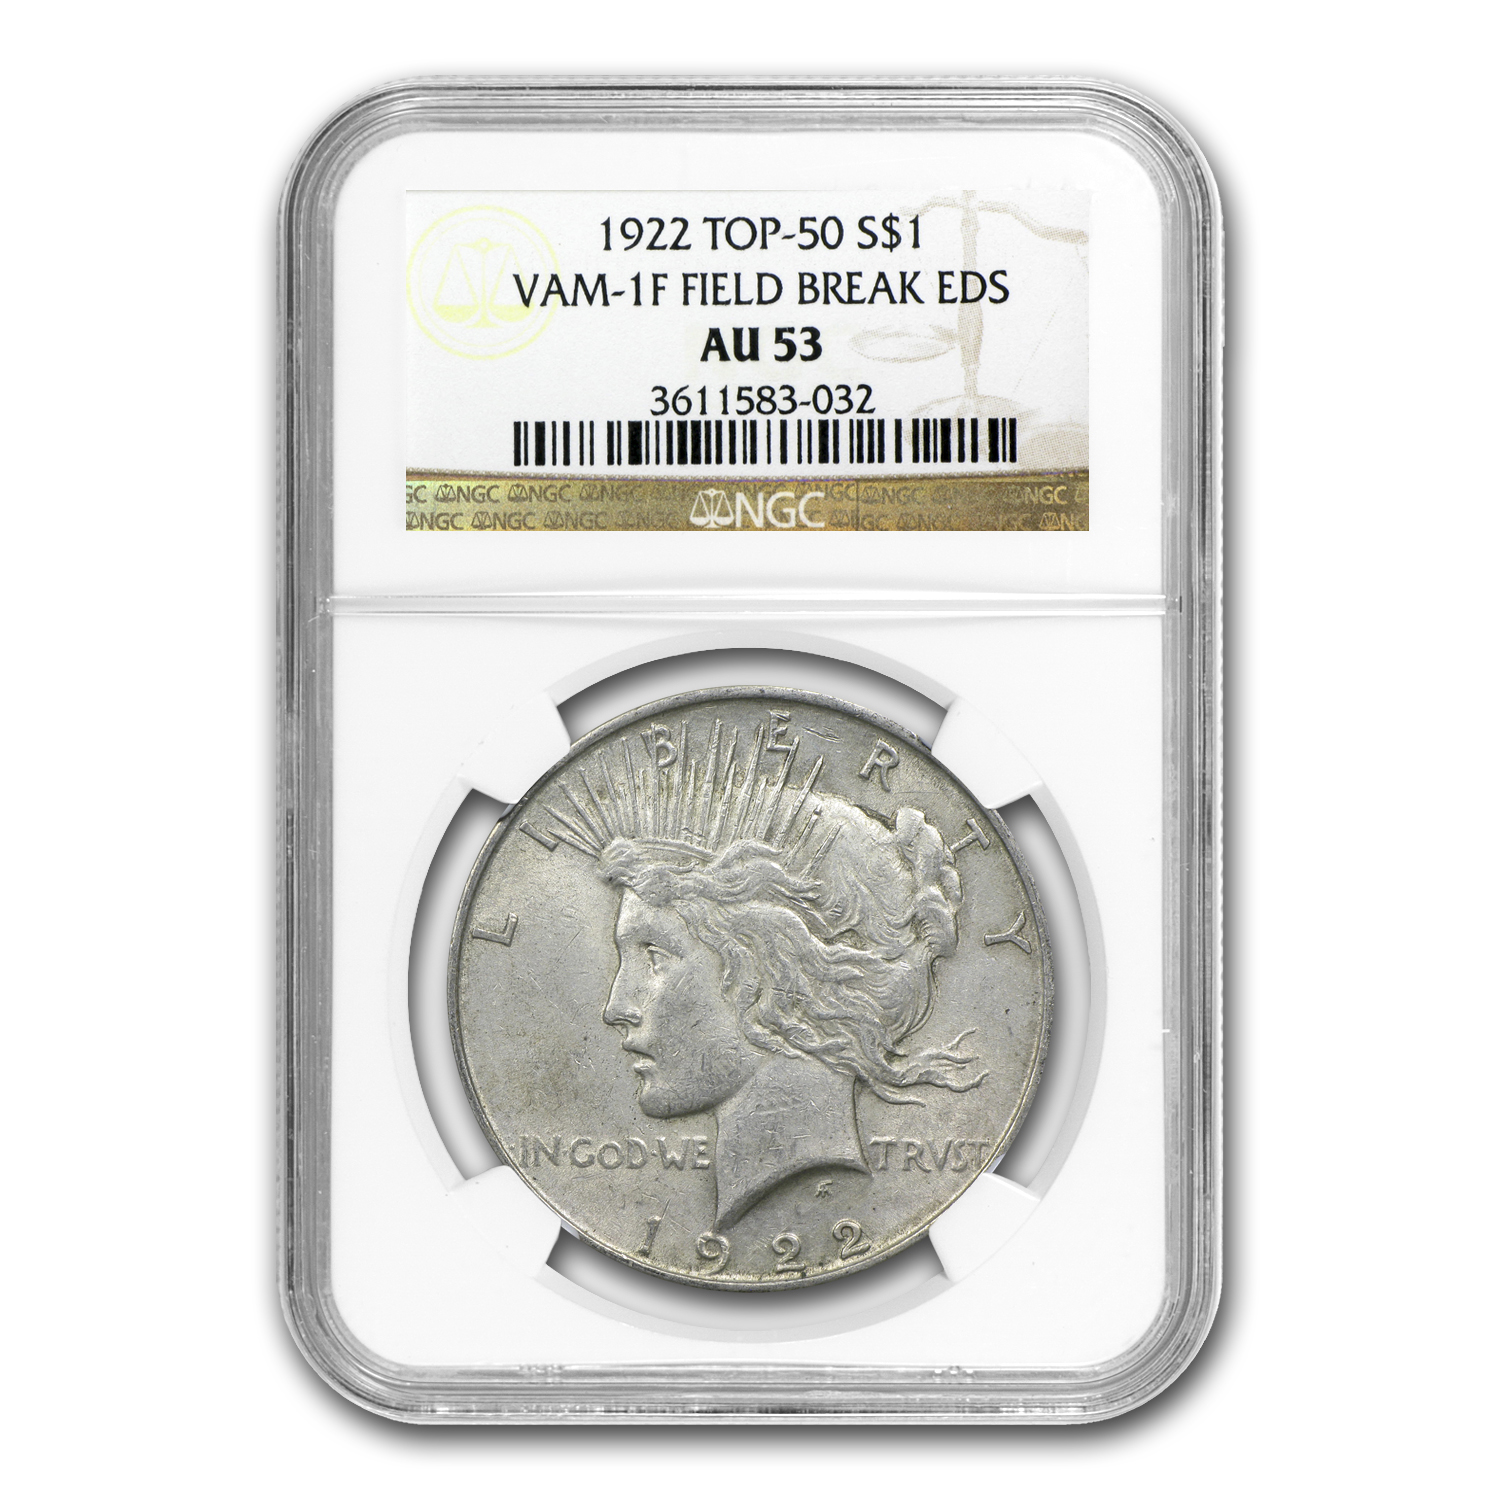 1922 Peace Dollar AU-53 NGC - VAM-1F EDS Field Die Break (Top-50)